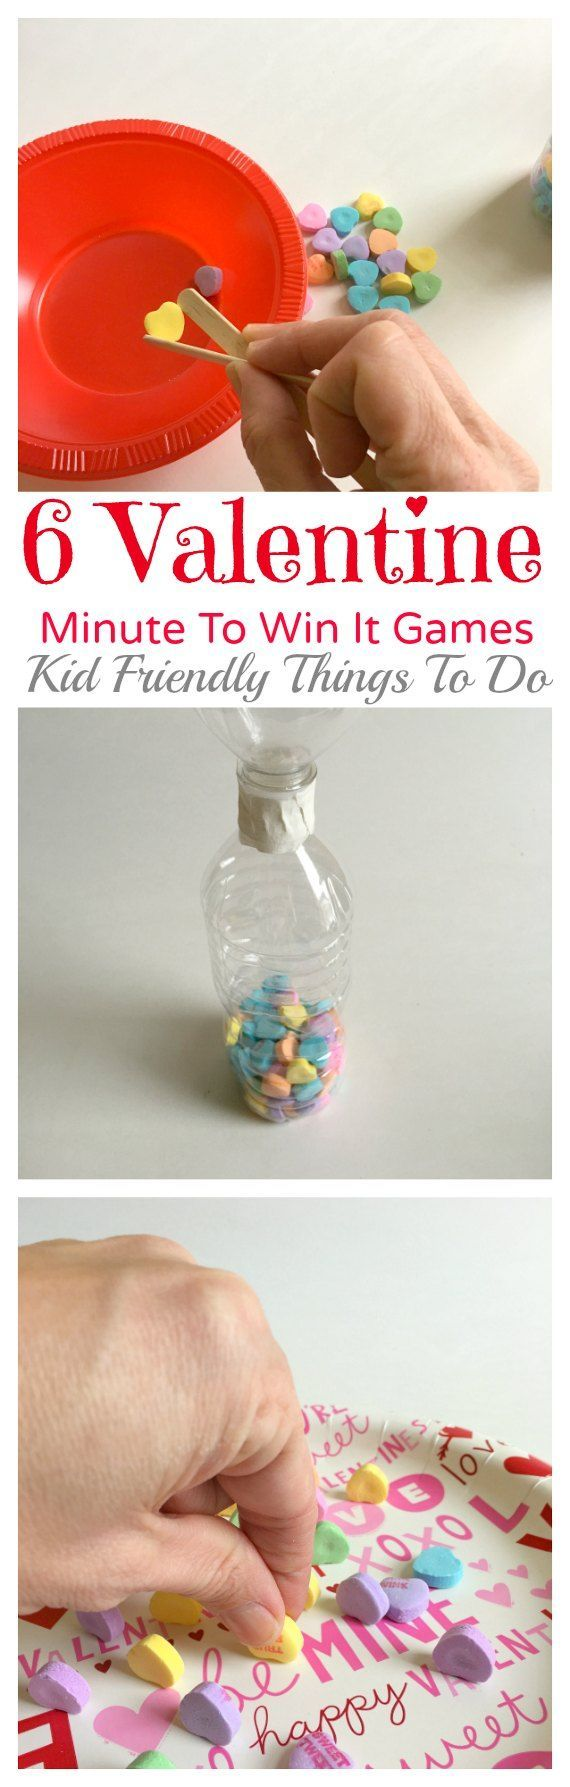 Best 25+ Valentines games ideas on Pinterest | Valentines party ...